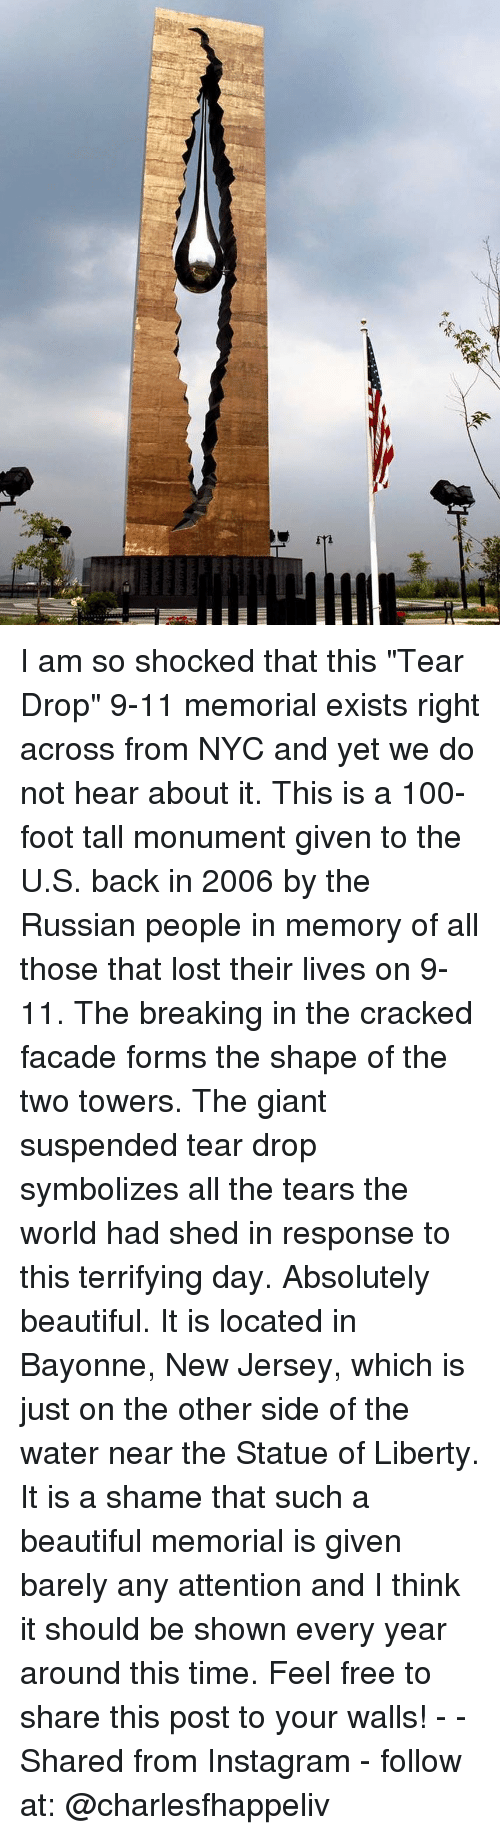 "9/11, Anaconda, and Beautiful: I am so shocked that this ""Tear Drop"" 9-11 memorial exists right across from NYC and yet we do not hear about it. This is a 100-foot tall monument given to the U.S. back in 2006 by the Russian people in memory of all those that lost their lives on 9-11. The breaking in the cracked facade forms the shape of the two towers. The giant suspended tear drop symbolizes all the tears the world had shed in response to this terrifying day. Absolutely beautiful. It is located in Bayonne, New Jersey, which is just on the other side of the water near the Statue of Liberty. It is a shame that such a beautiful memorial is given barely any attention and I think it should be shown every year around this time. Feel free to share this post to your walls! - - Shared from Instagram - follow at: @charlesfhappeliv"